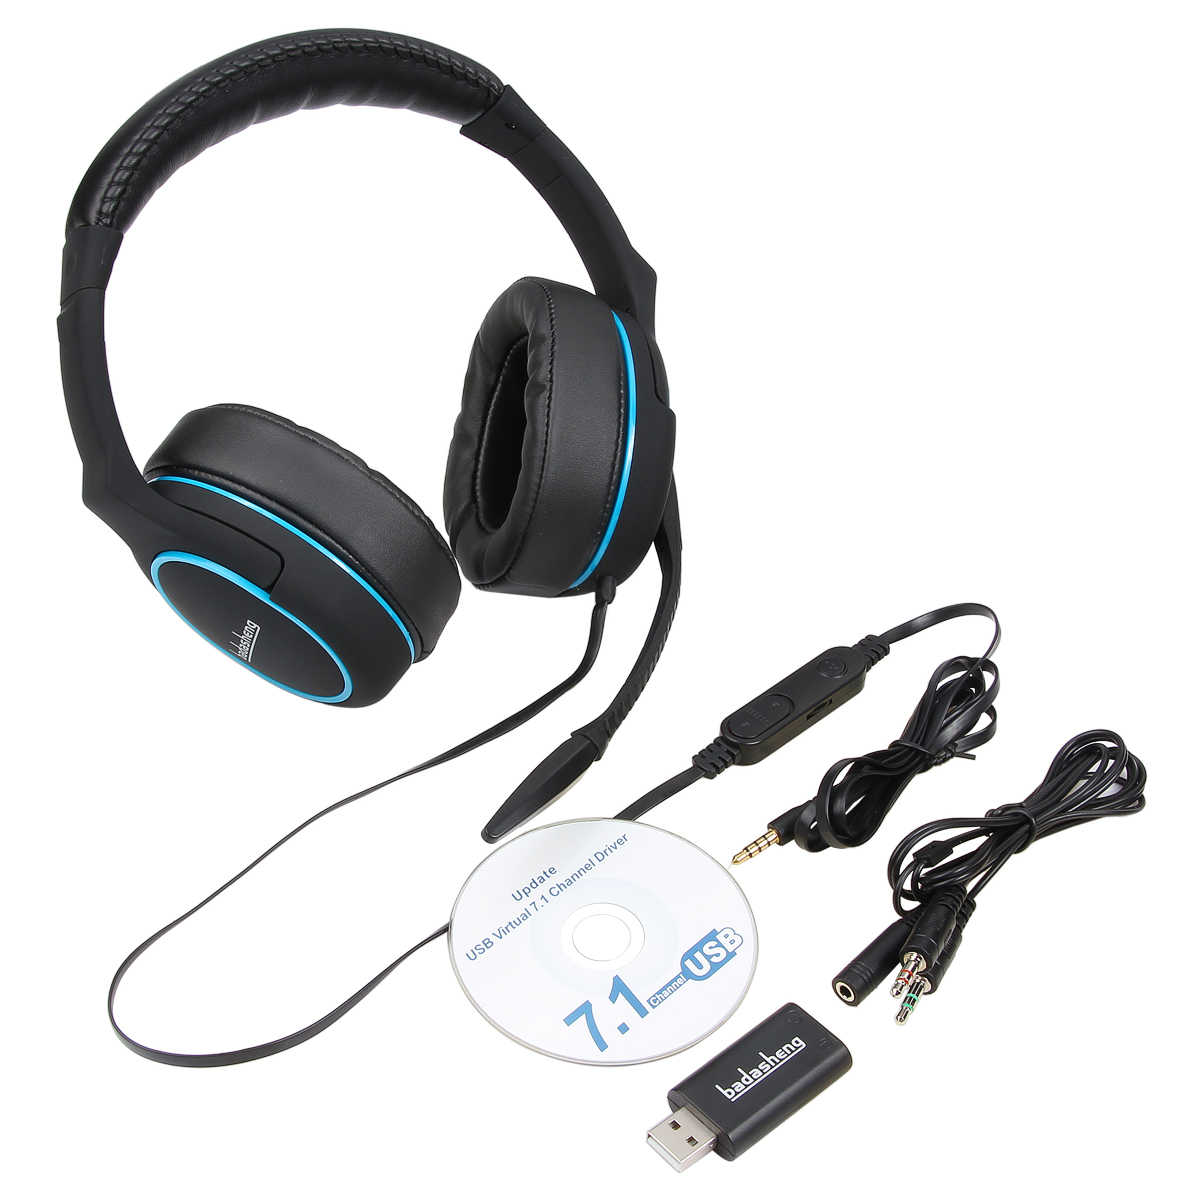 Usb 7.1 surround wired headset gamer pc 3.5mm ps4 fones de ouvido surround som & hd microfone jogos overear portátil tablet gamer